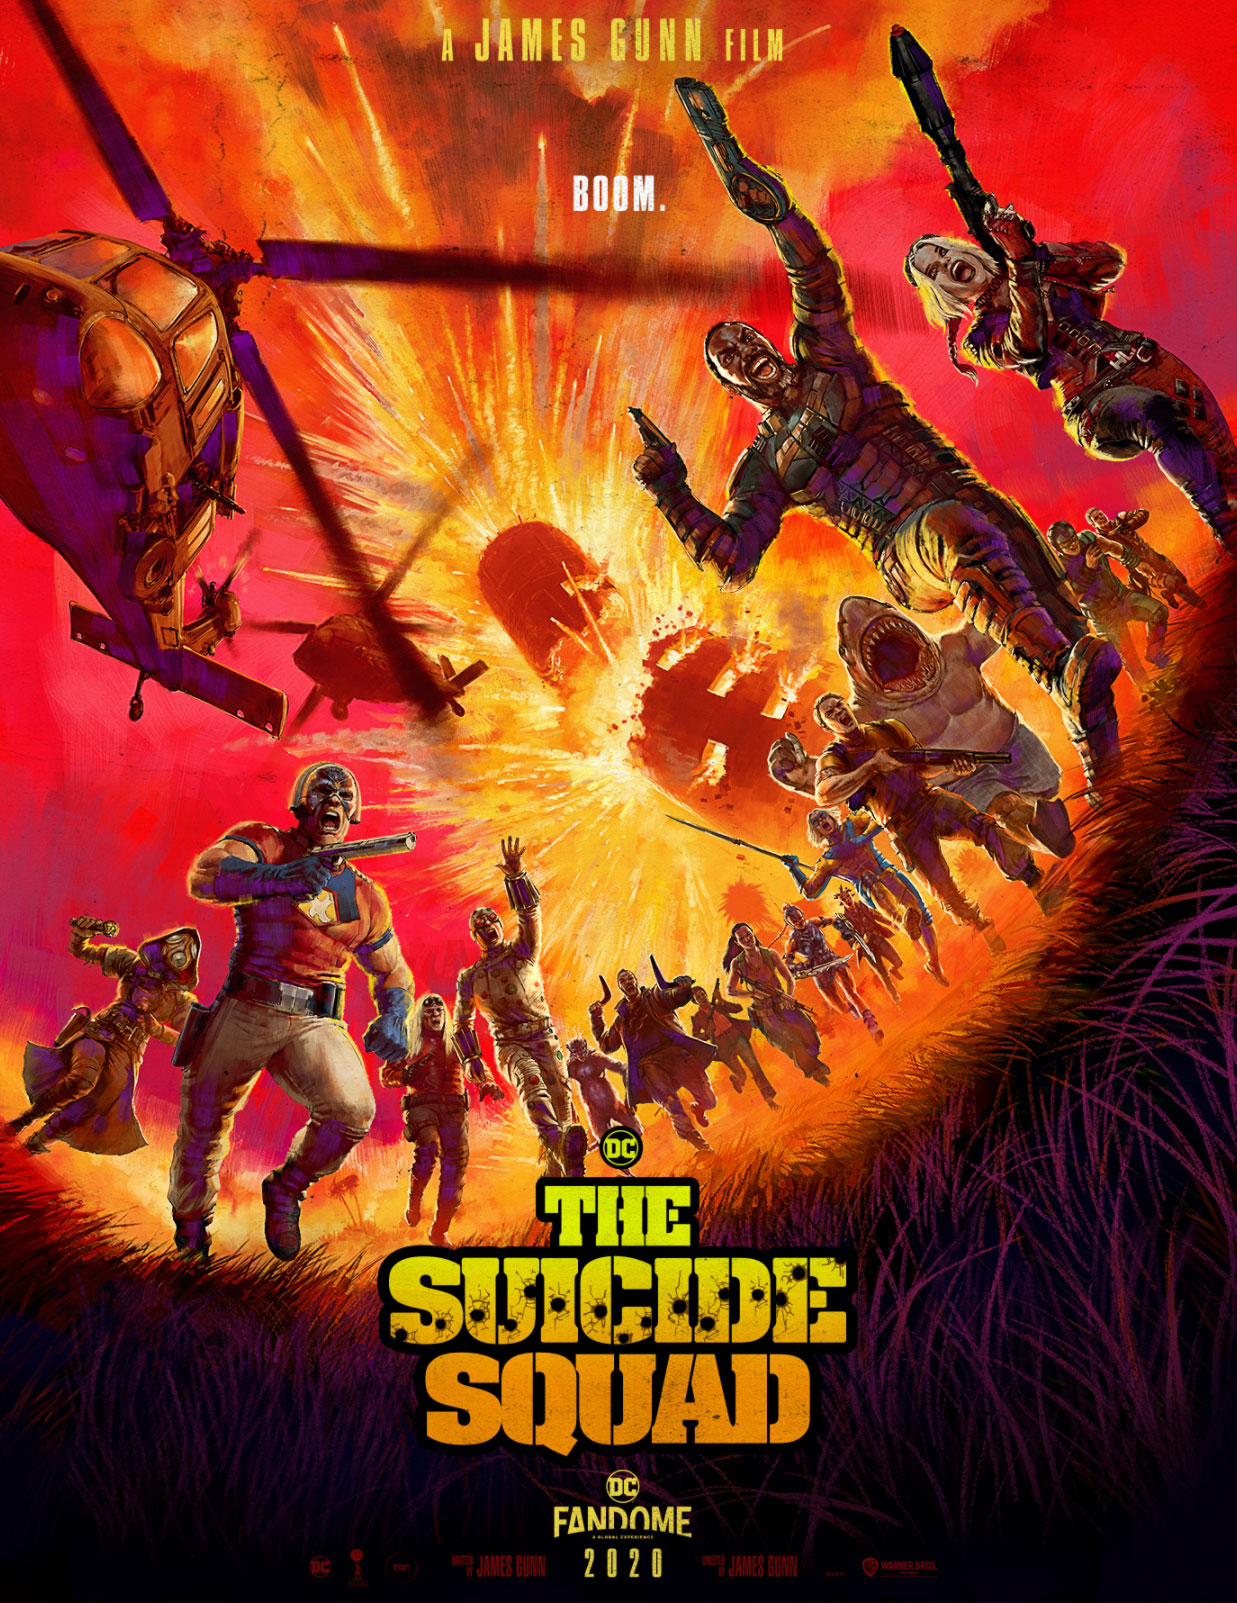 The-Suicide-Squad-poster.jpg